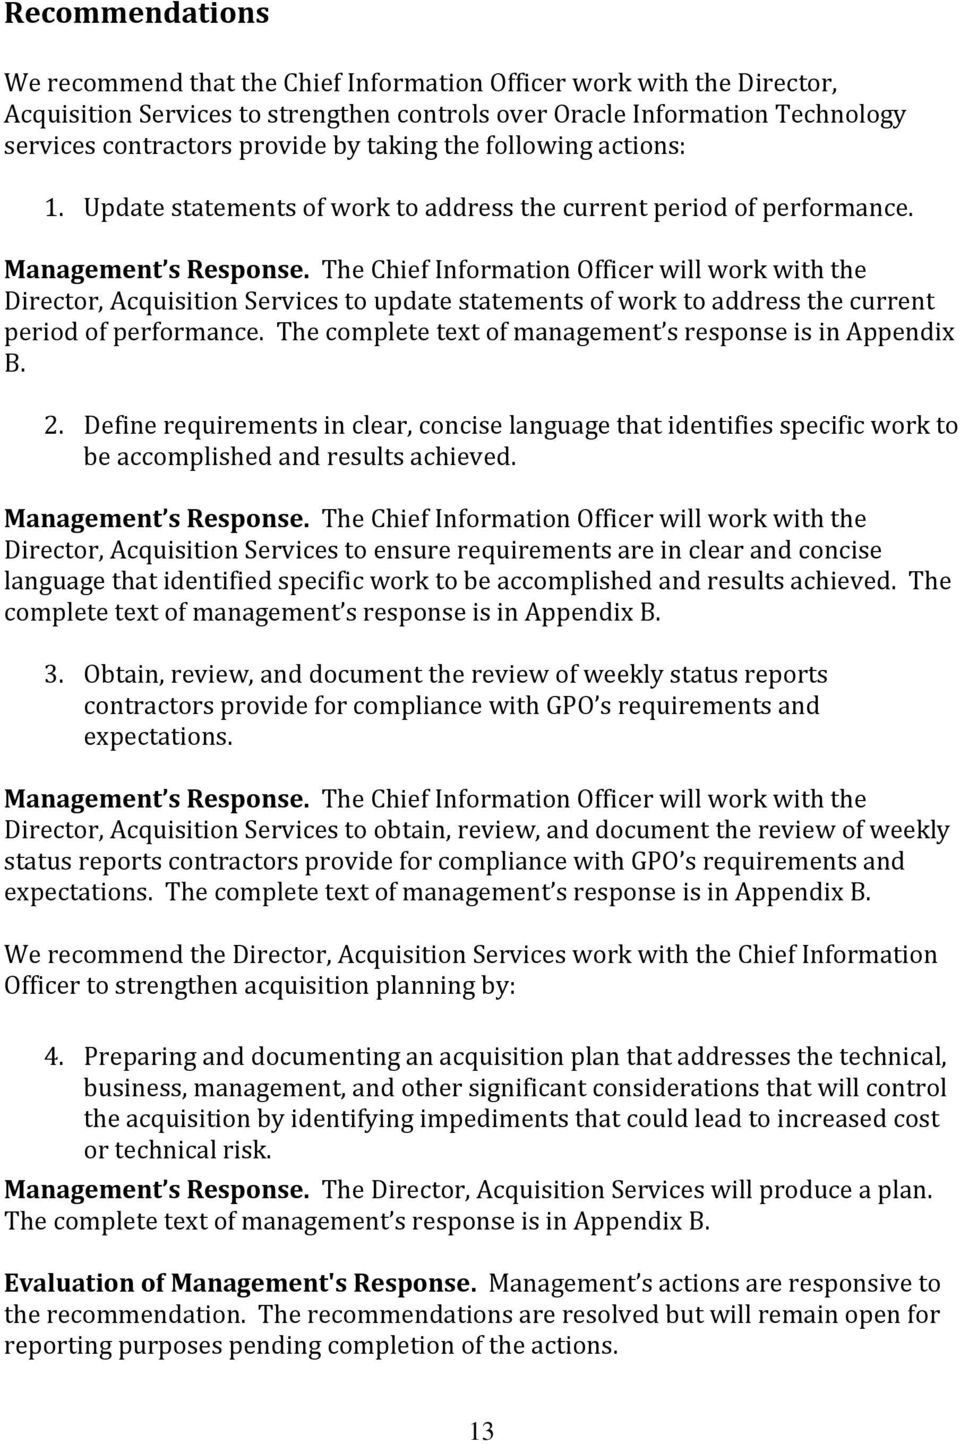 The Chief Information Officer will work with the Director, Acquisition Services to update statements of work to address the current period of performance.